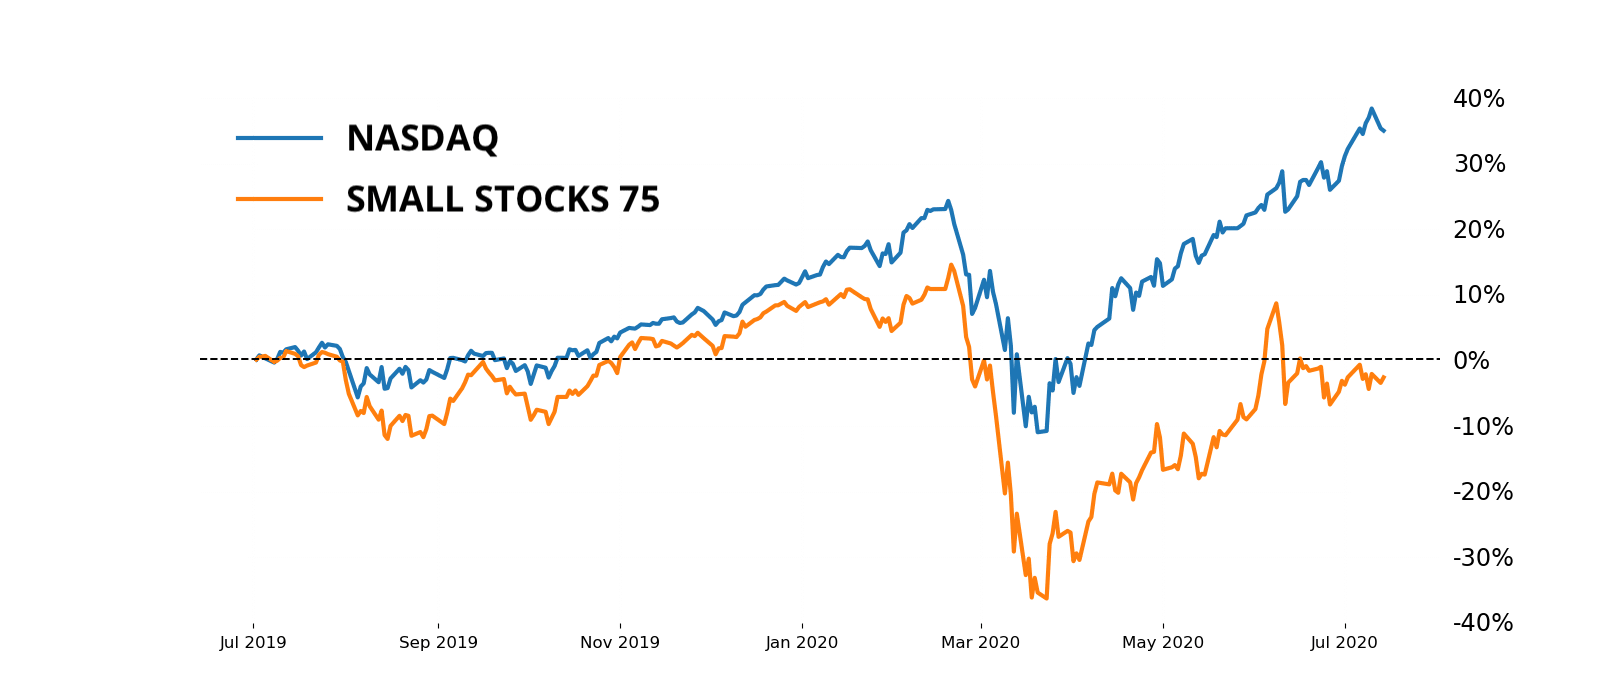 Small Stocks 75 vs. NASDAQ